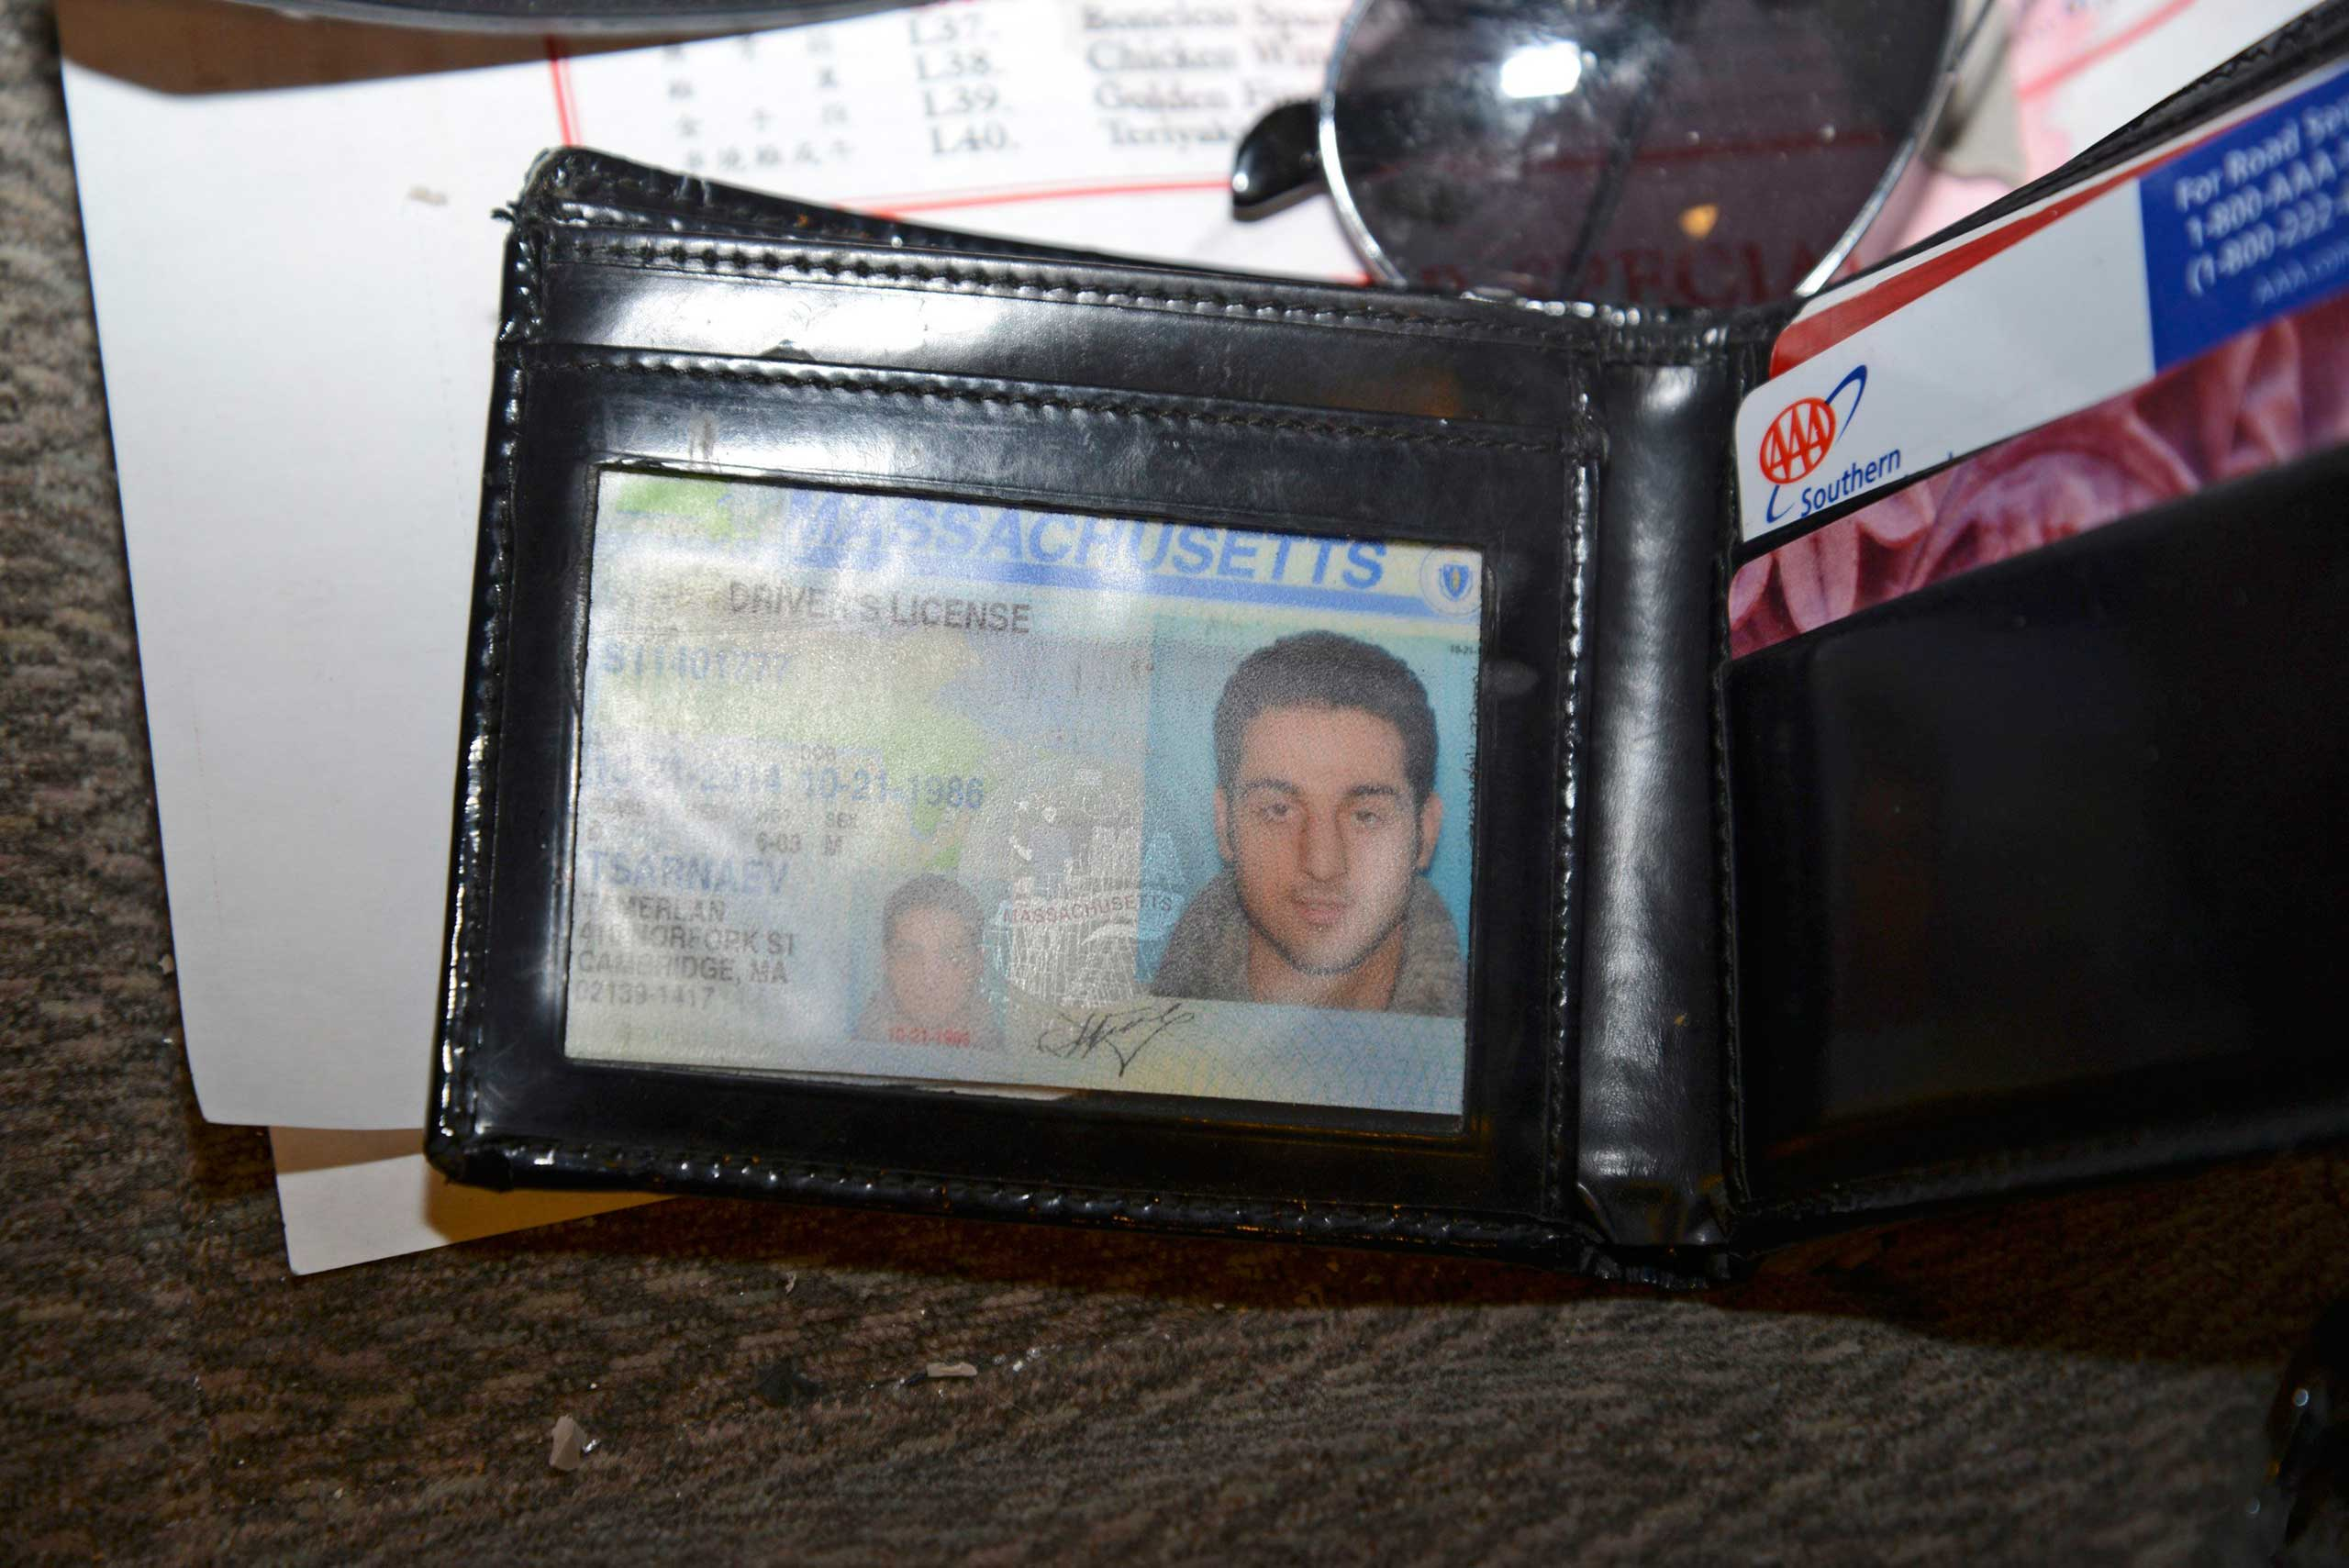 A wallet containing Tamerlan Tsarnaev's drivers license is seen in a still handout image entered as evidence in the trial of Boston Marathon bombing suspect Dzhokhar Tsarnaev.